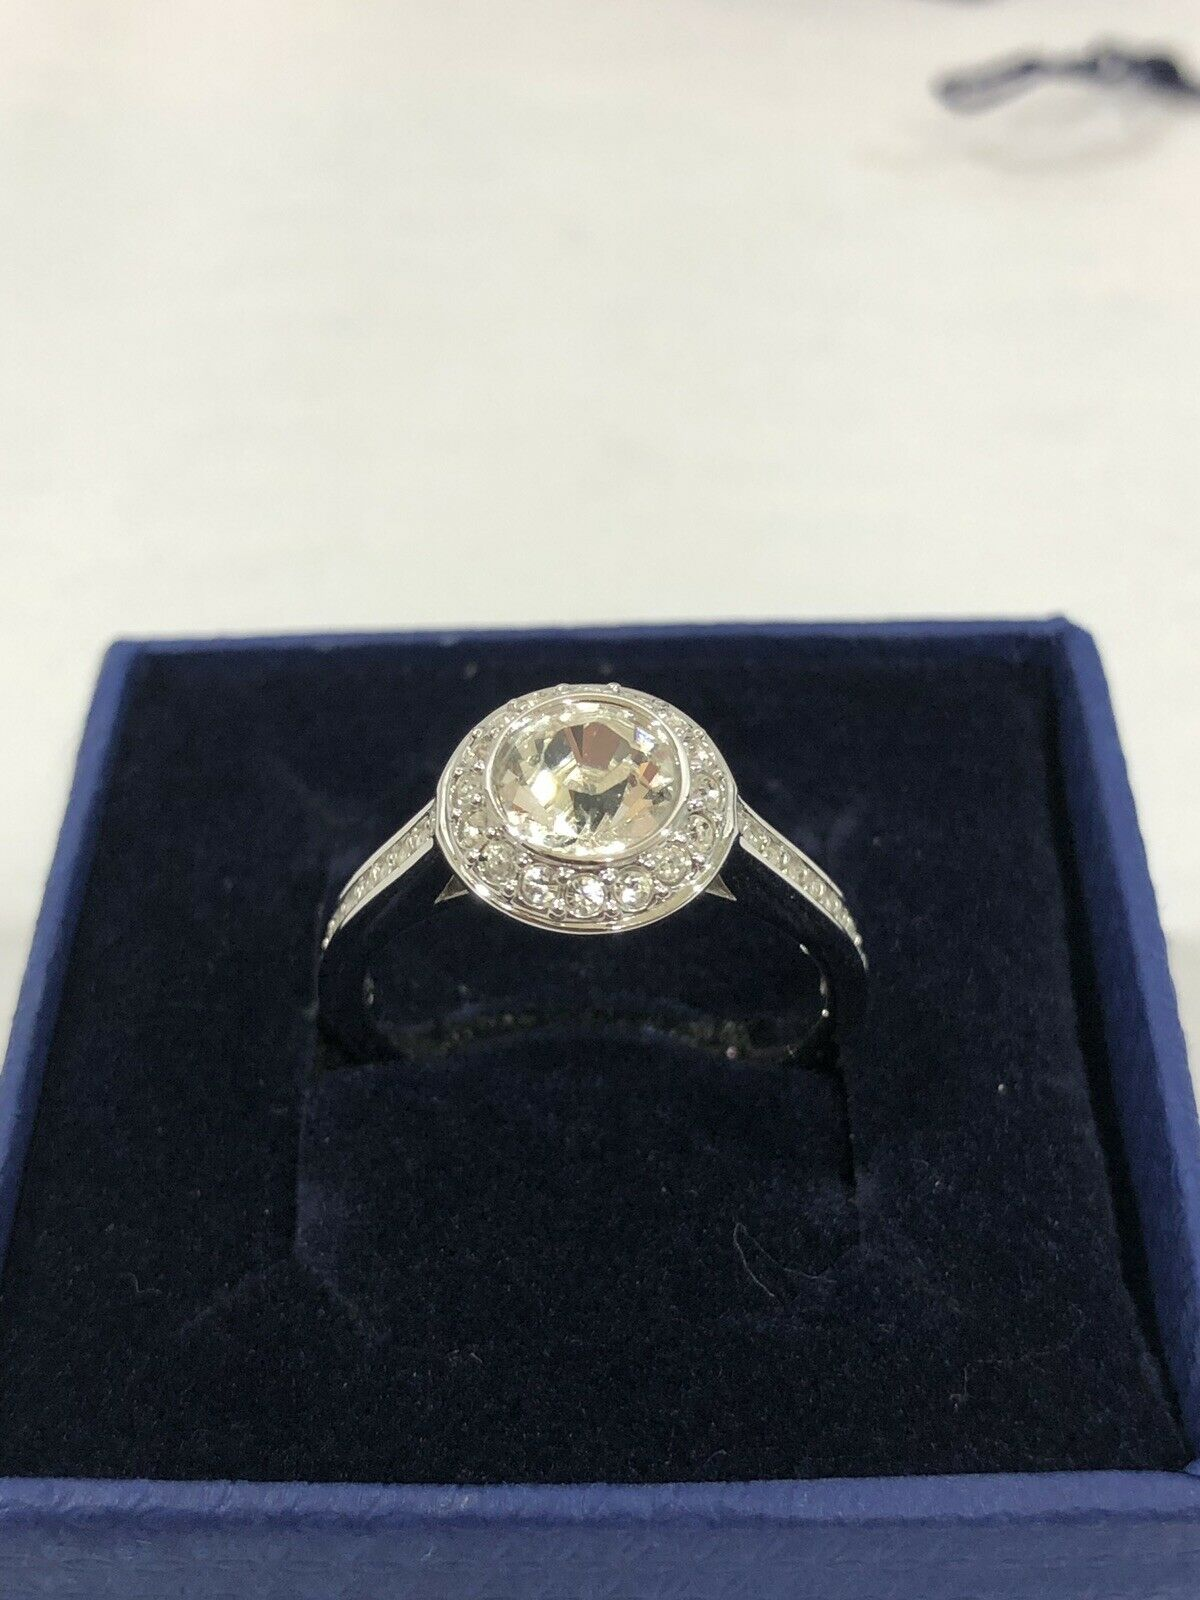 Swarovski Crystal Angelic Ring 1081951 Size 58 -US Size 8 New in Box